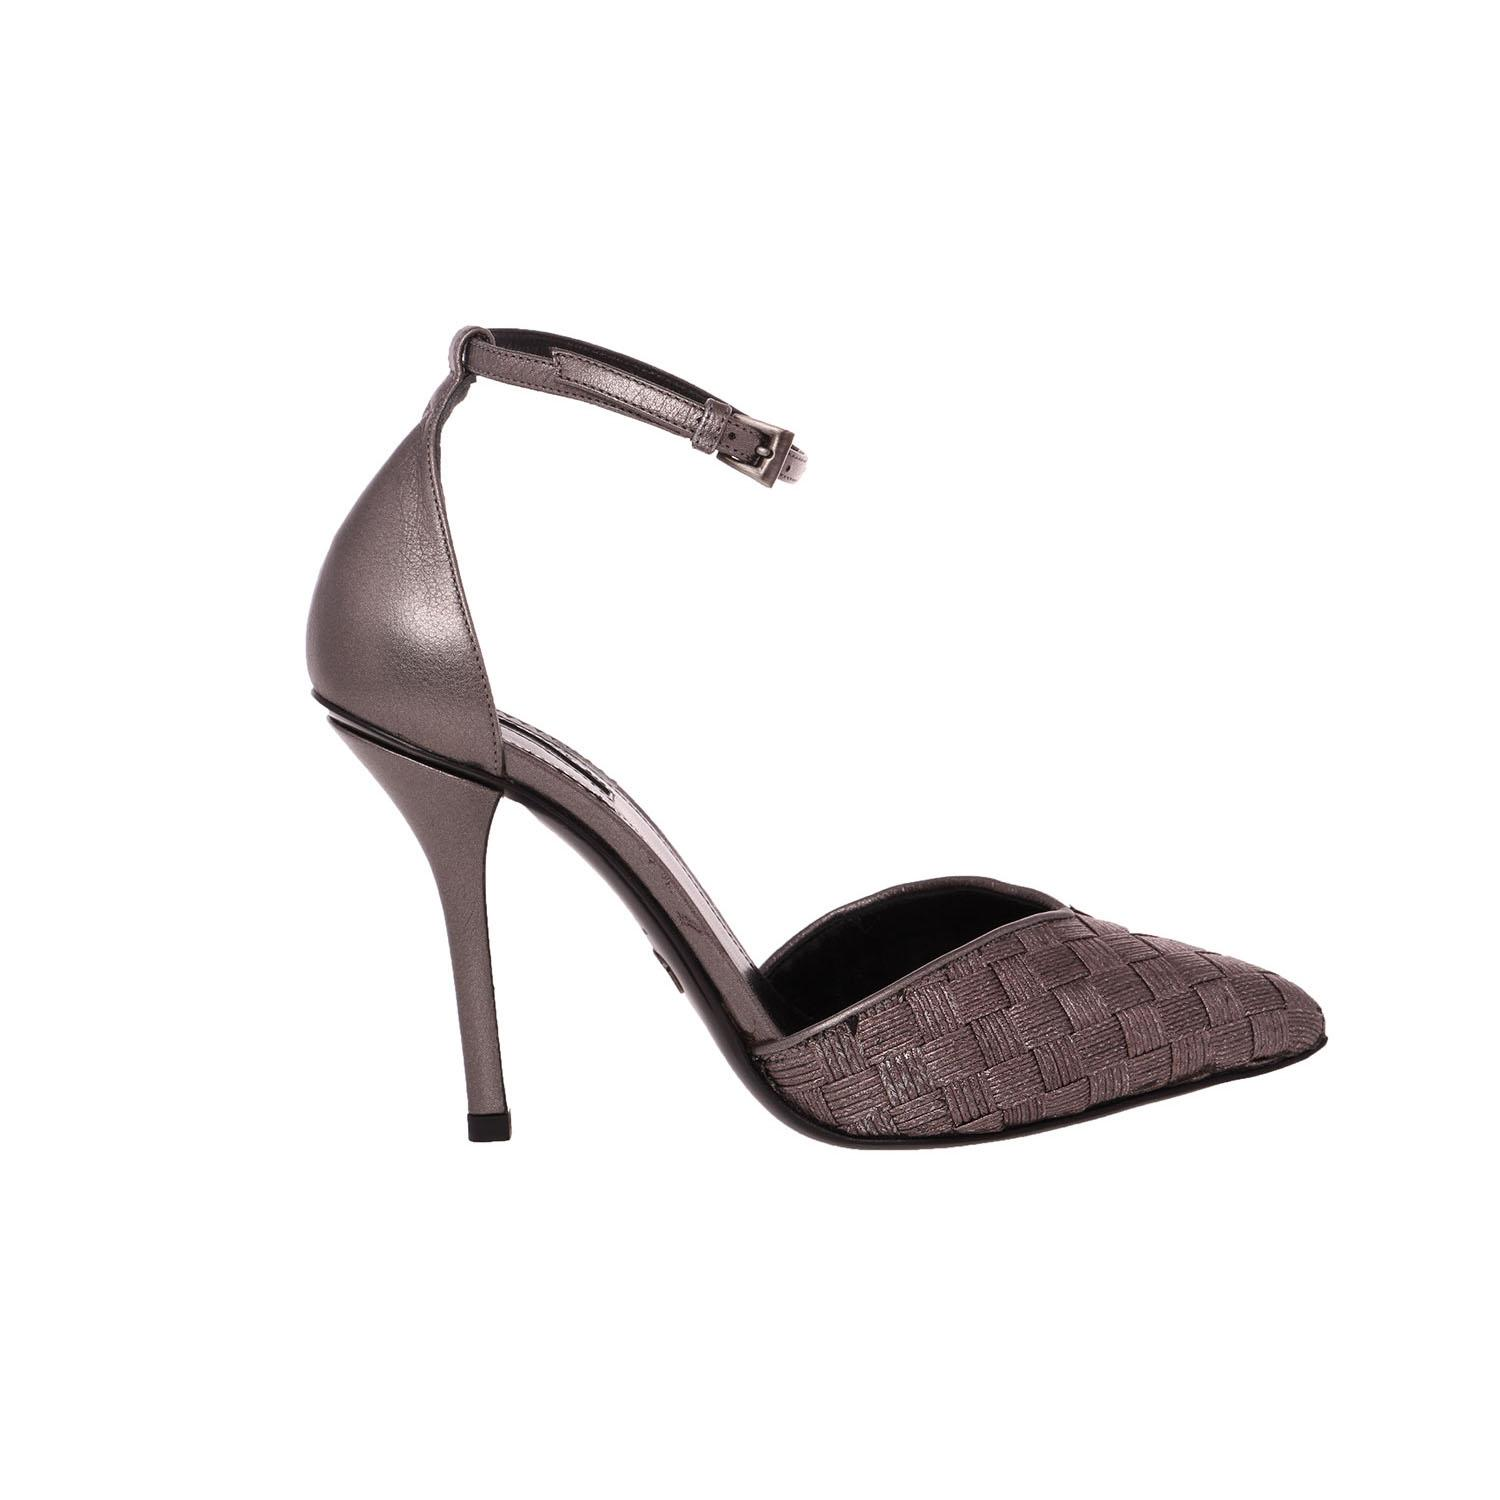 free shipping best place 2014 new cheap price Giorgio Armani Pointed-Toe d'Orsay Pumps skxz6M